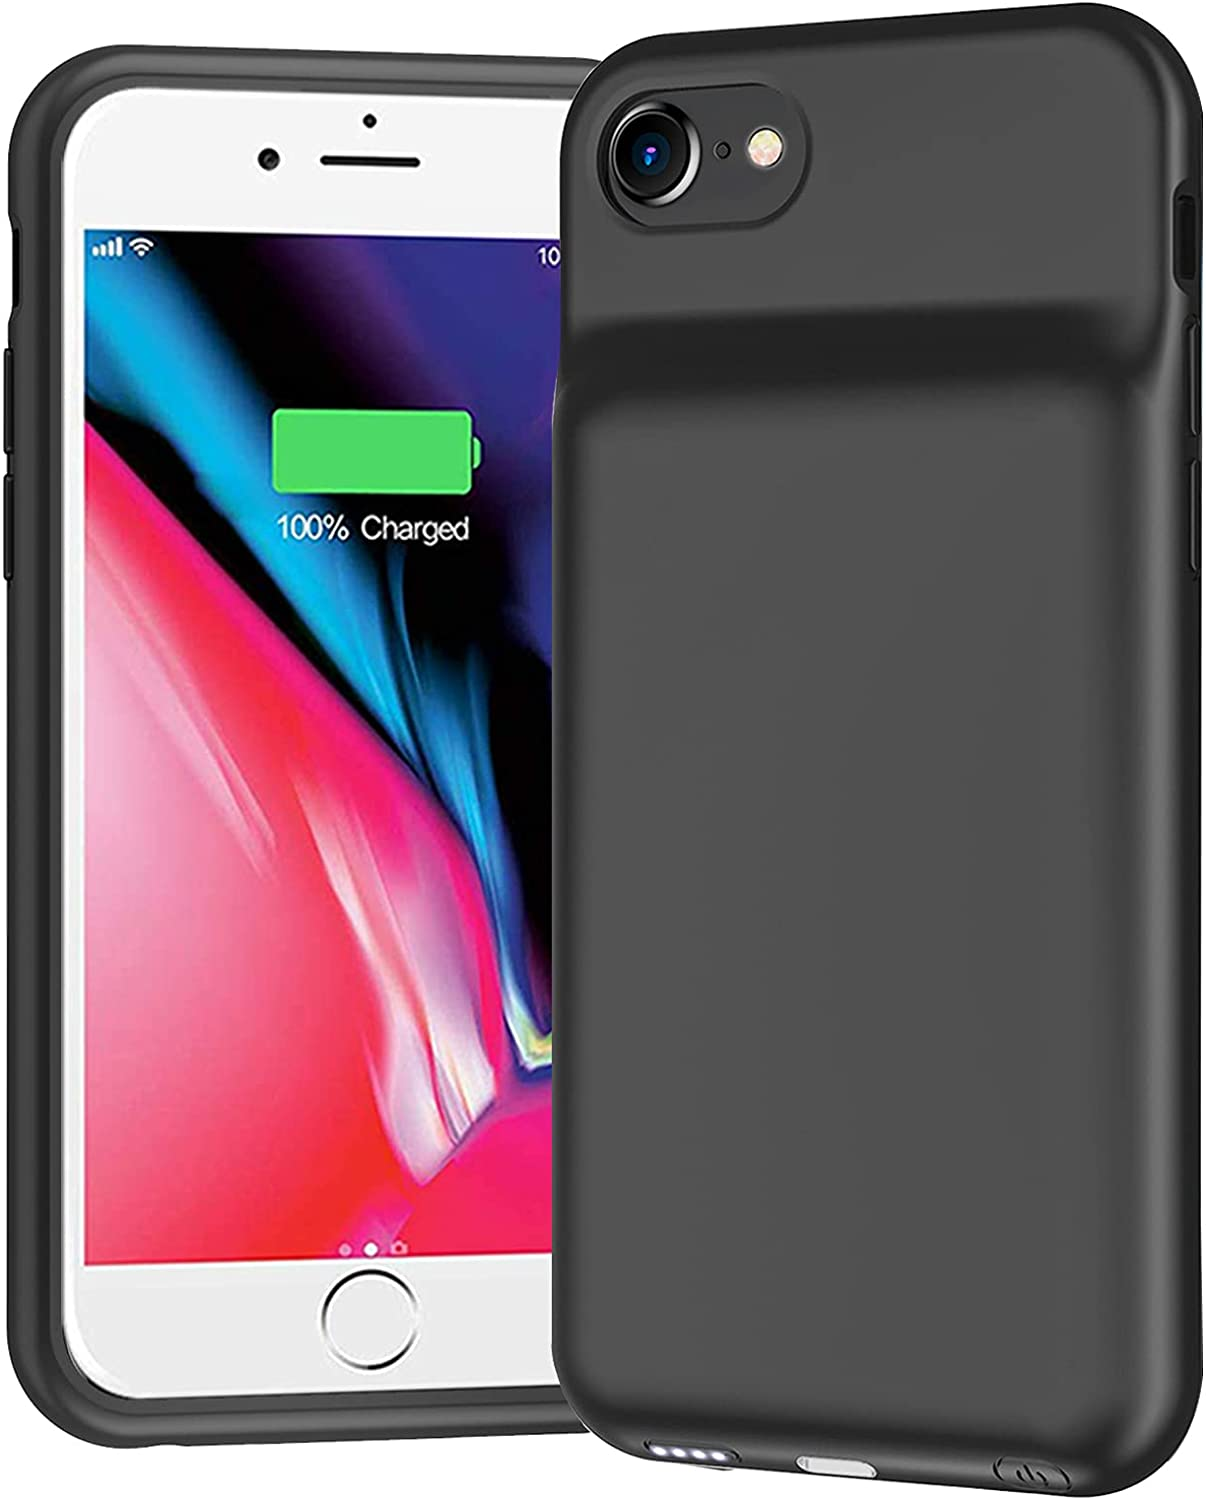 Battery Case for iPhone 7/8/6/6s/SE 2020, 6500mAh Portable Protective Charging Case Compatible with iPhone SE 2020/8/7/6/6s (4.7 inch) Extended Battery Charger Case (Black)